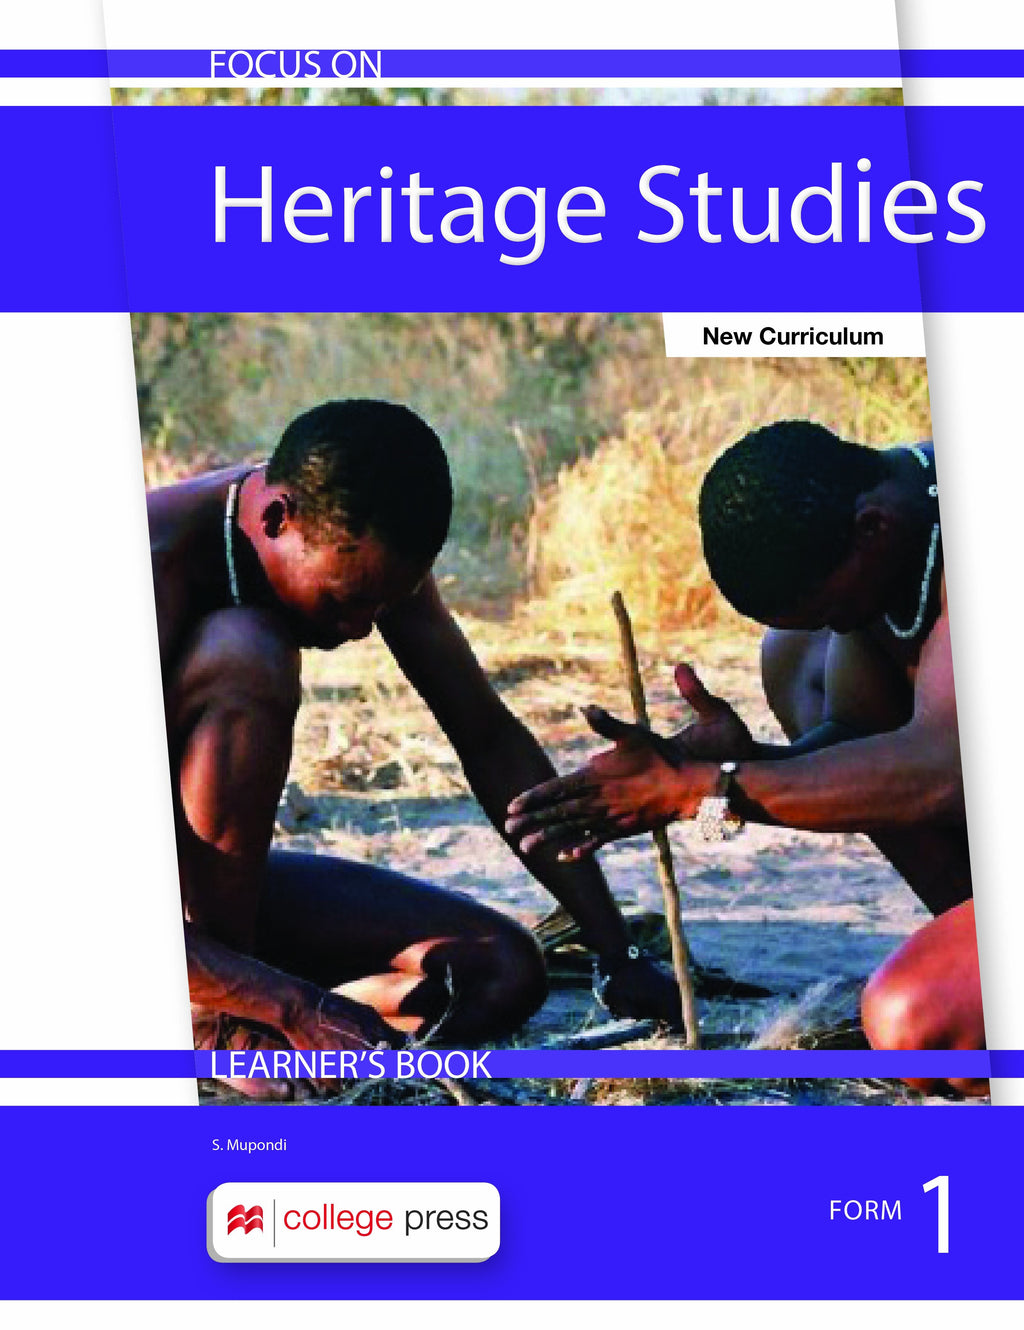 Focus on Heritage Studies Learner's Book FORM1